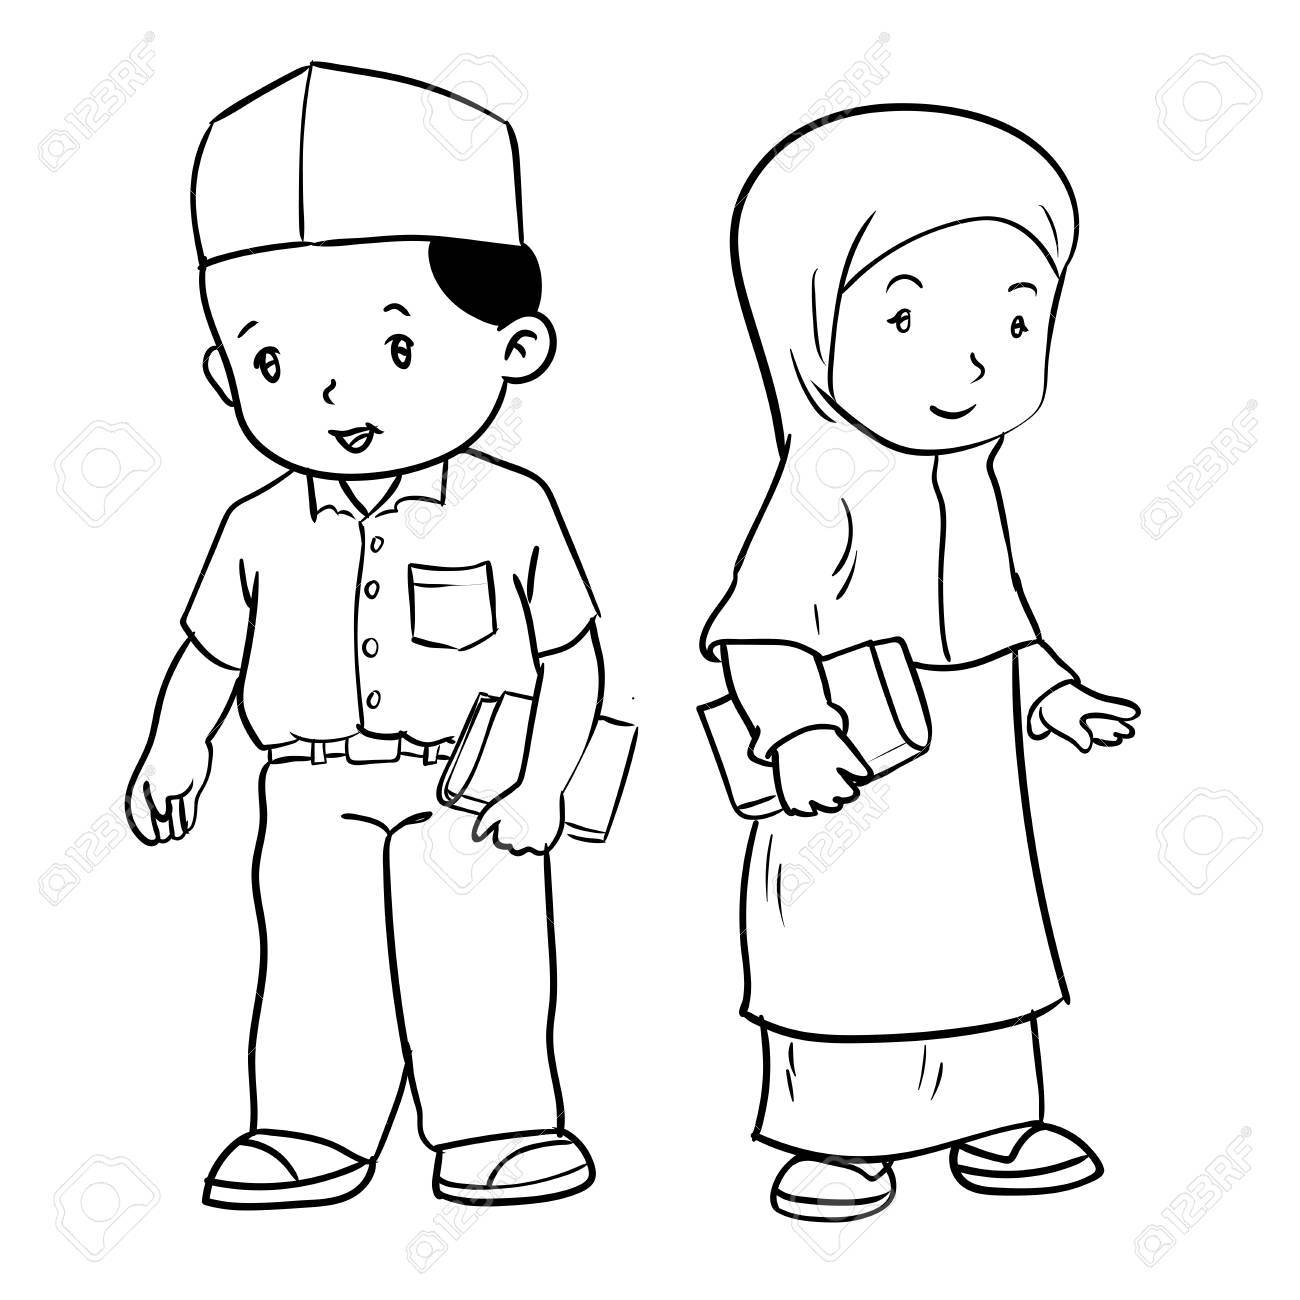 1300x1300 Hand Drawing Of Muslim Kids Standing Isolated On White Background